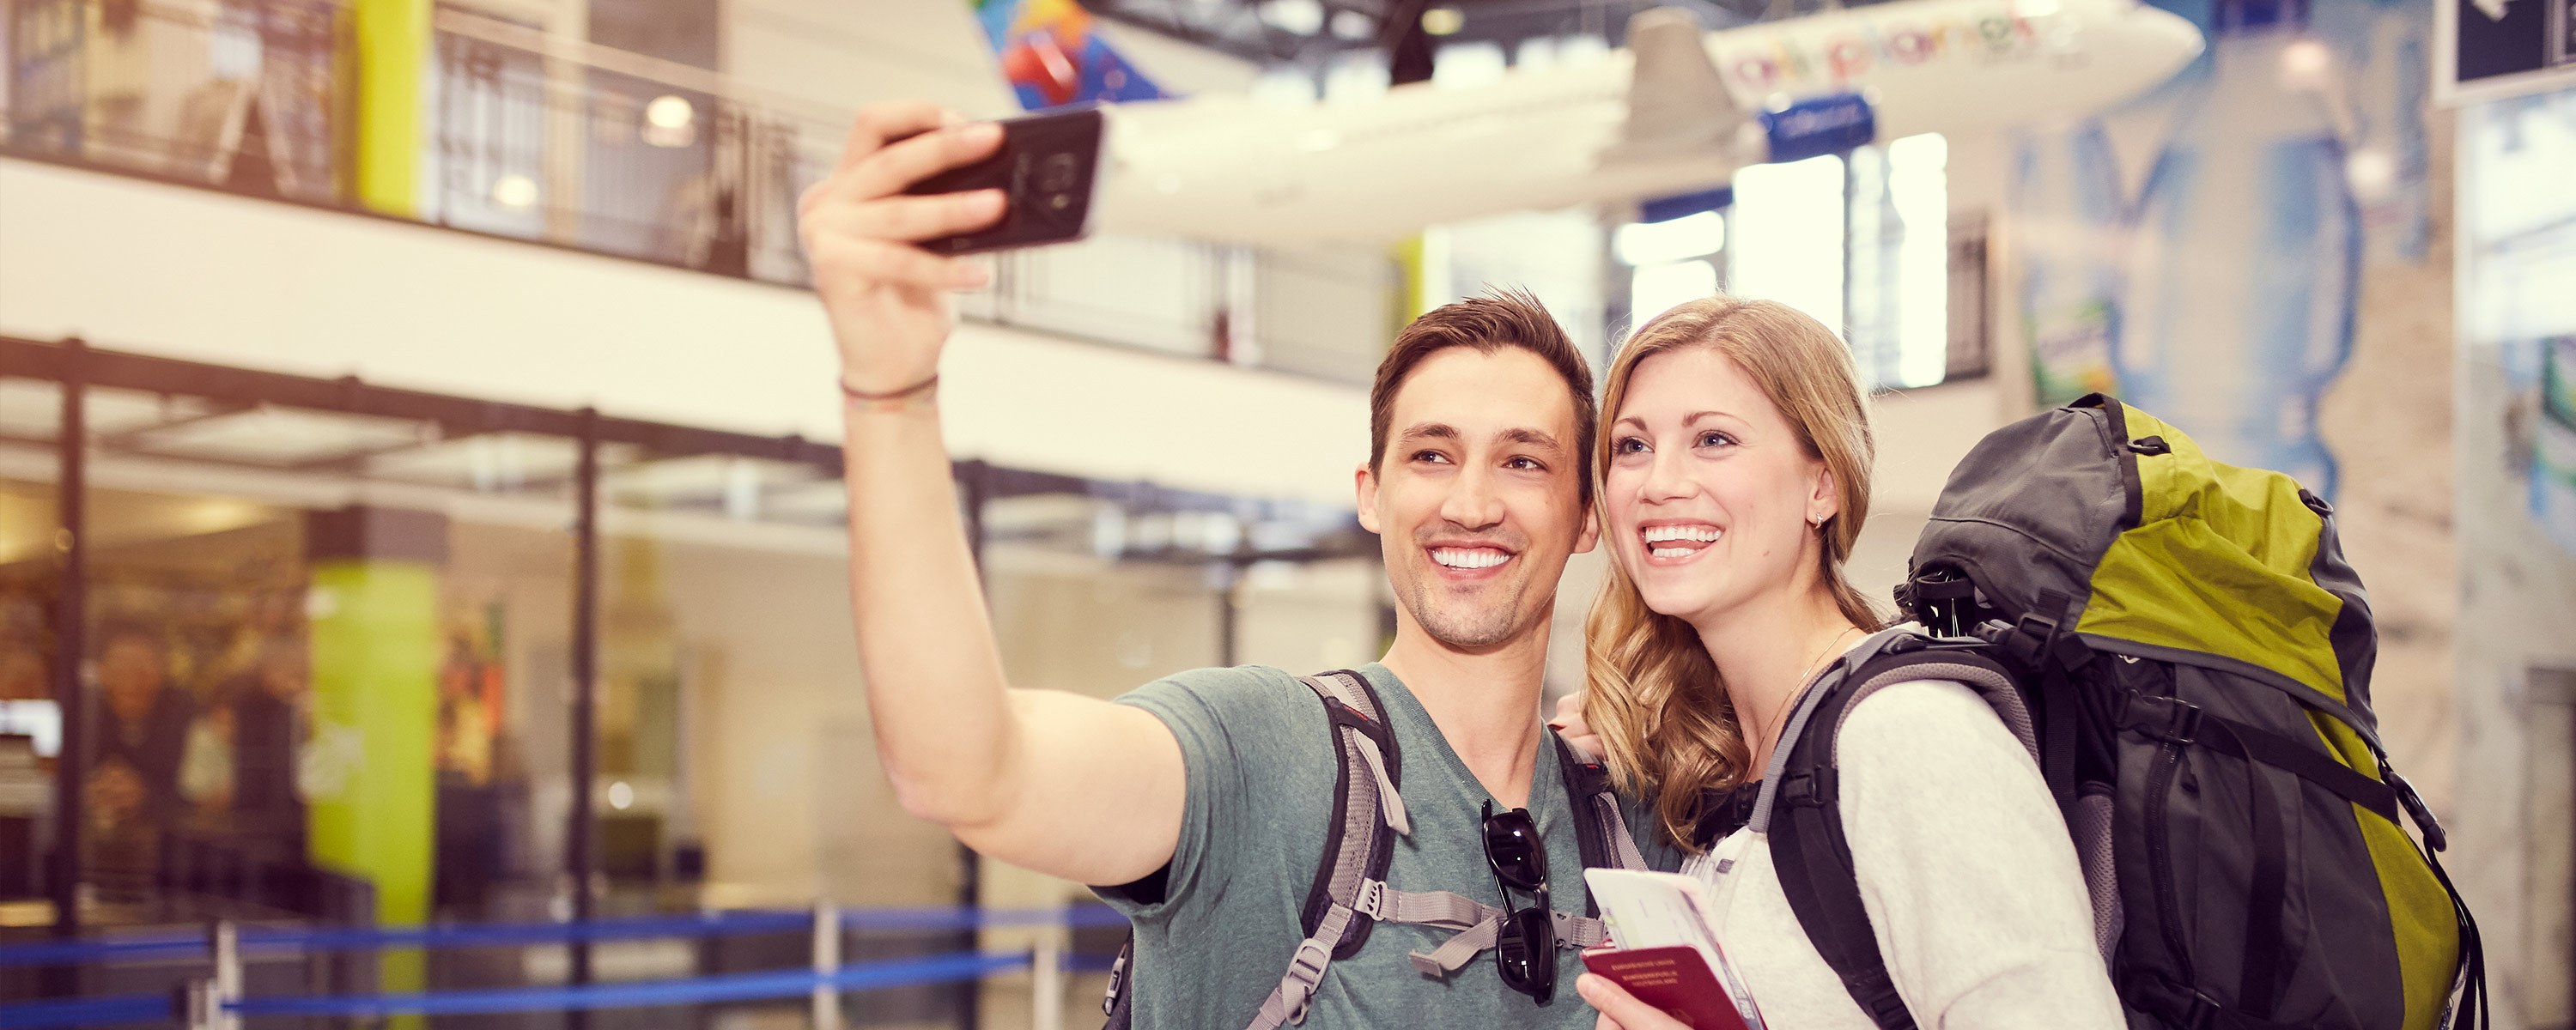 couple making a selfie at security check